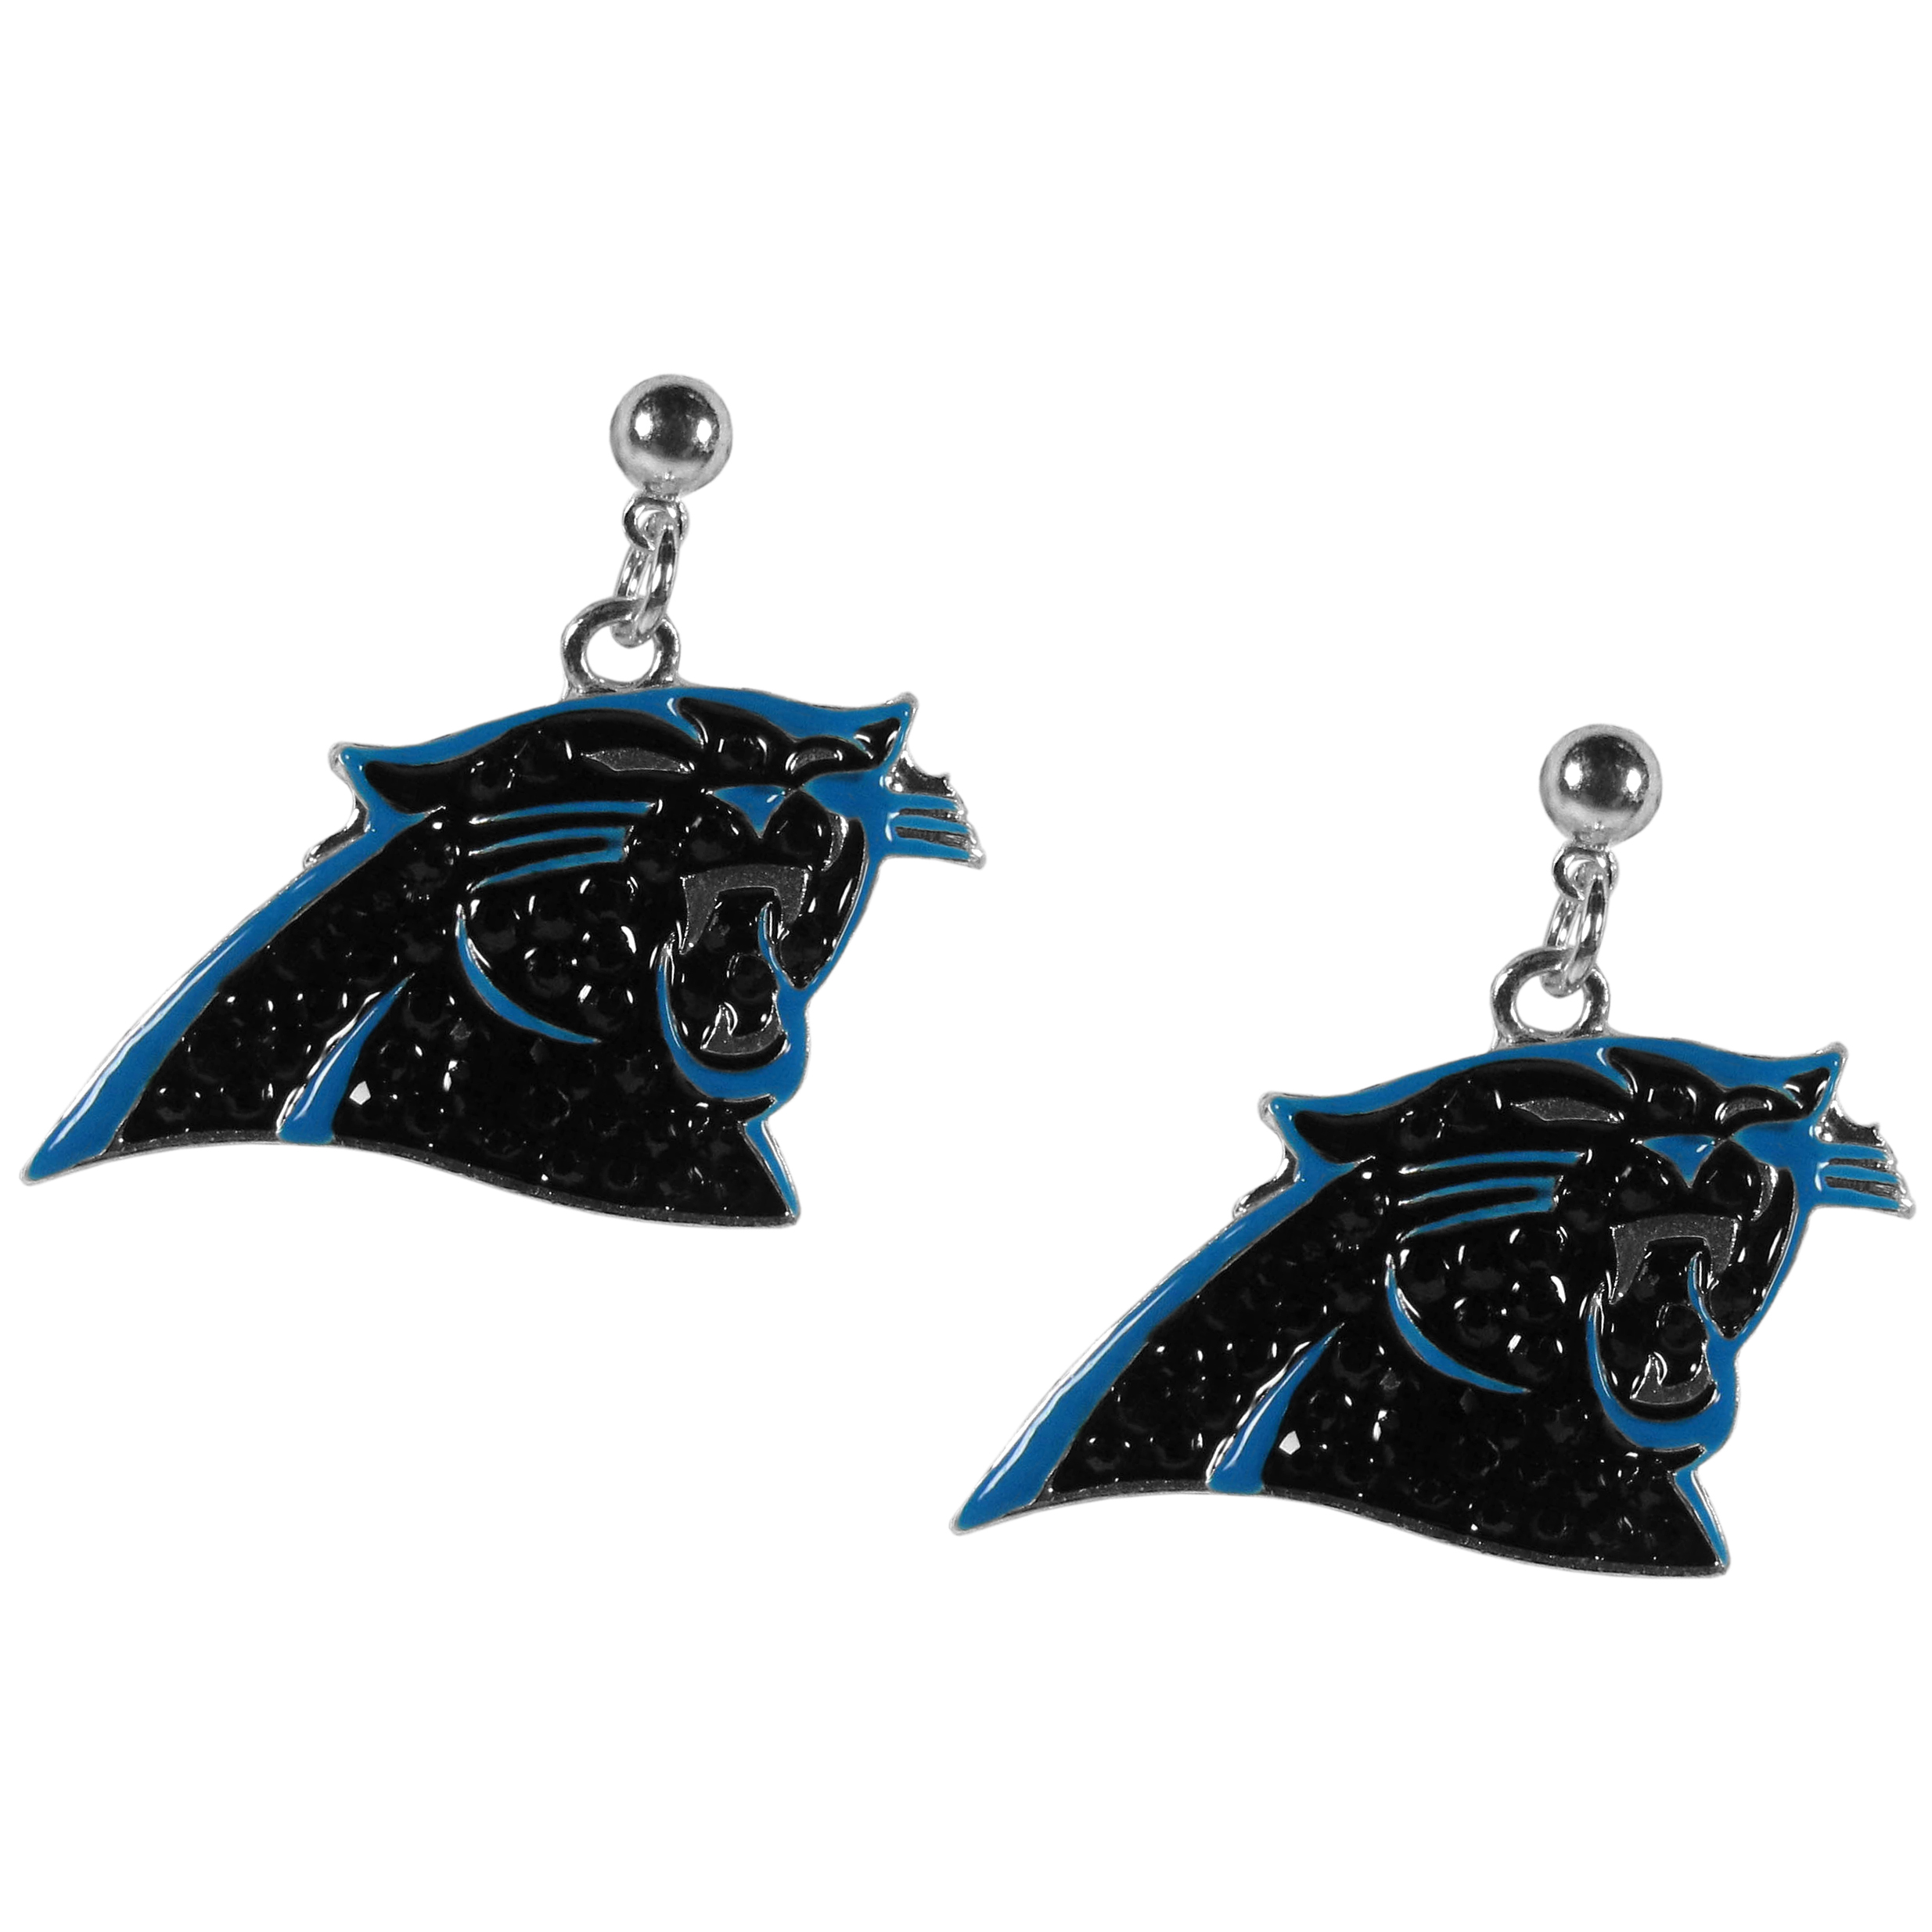 Carolina Panthers Crystal Stud Earrings - These sporty stud earrings have beautiful crystal enlaided Carolina Panthers charms that hang from the stud posts so that you have the best of both the dangle earring style with the comfort of the secure stud posts. The trendy charms are silver plated with colorful detail and are absolutely covered in team colored charms. The classy earrings feature hypo-allergenic posts.